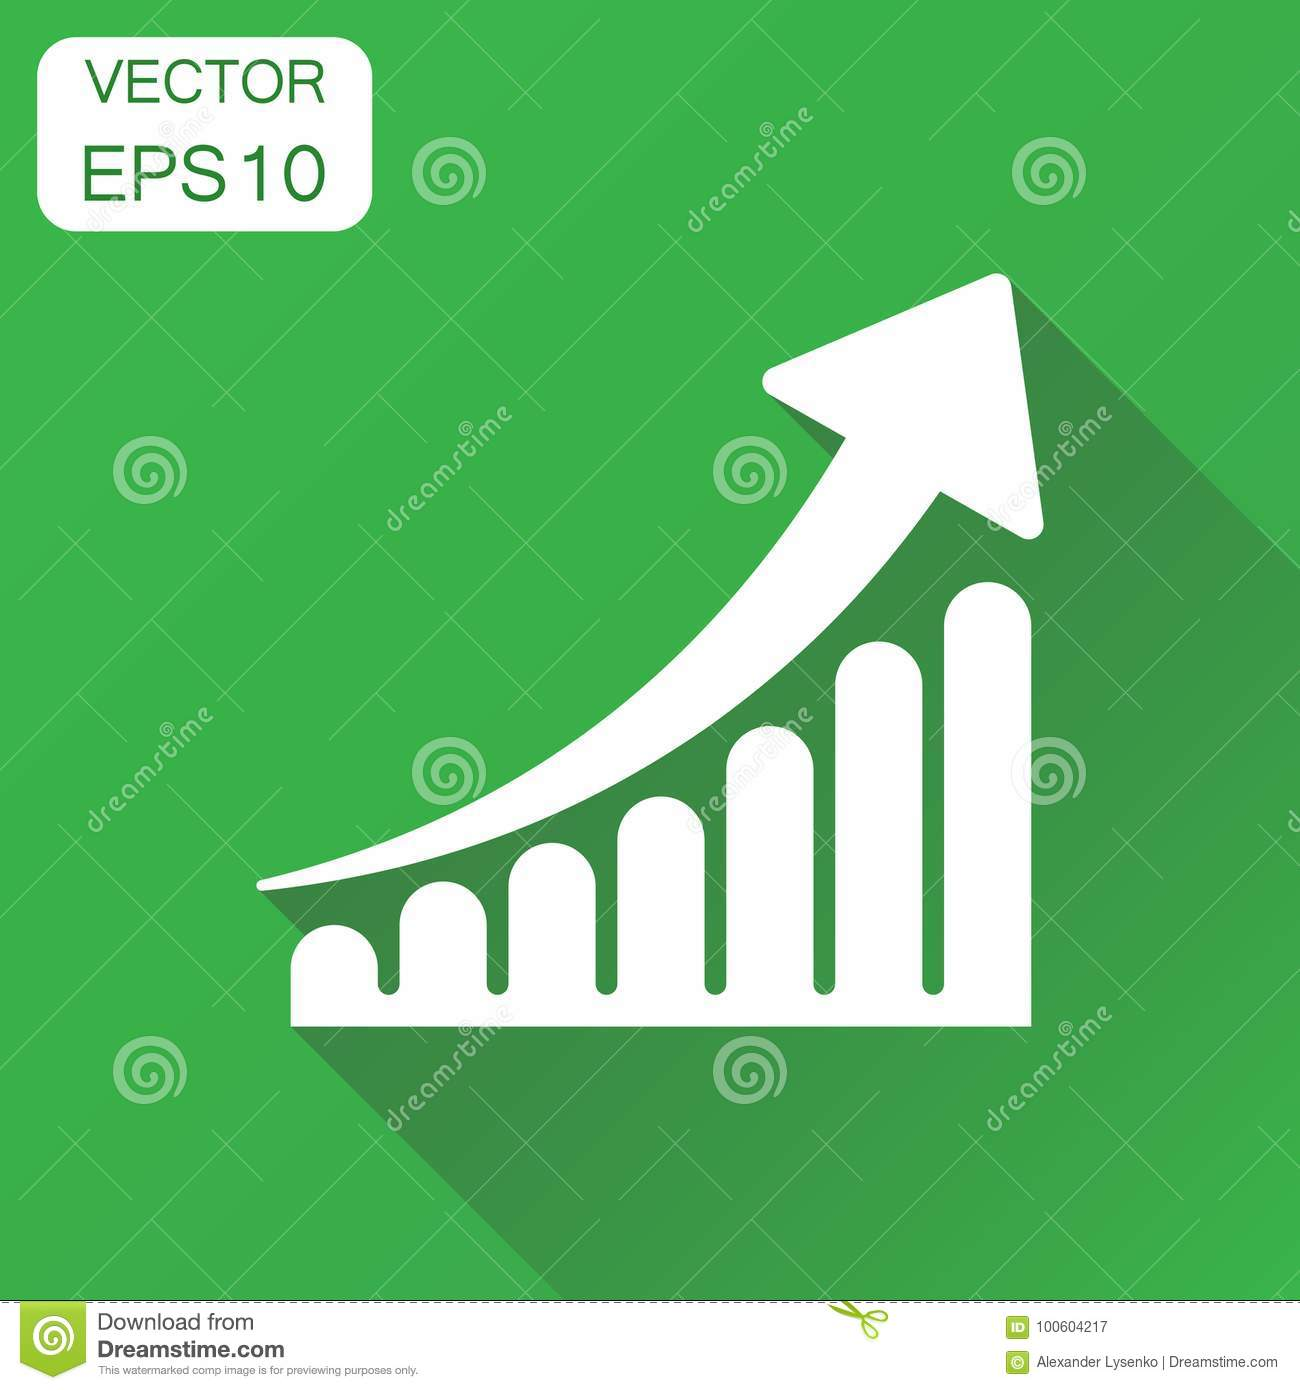 Growth chart icon business concept grow diagram pictogram vect growth chart icon business concept grow diagram pictogram vect simple financial ccuart Image collections